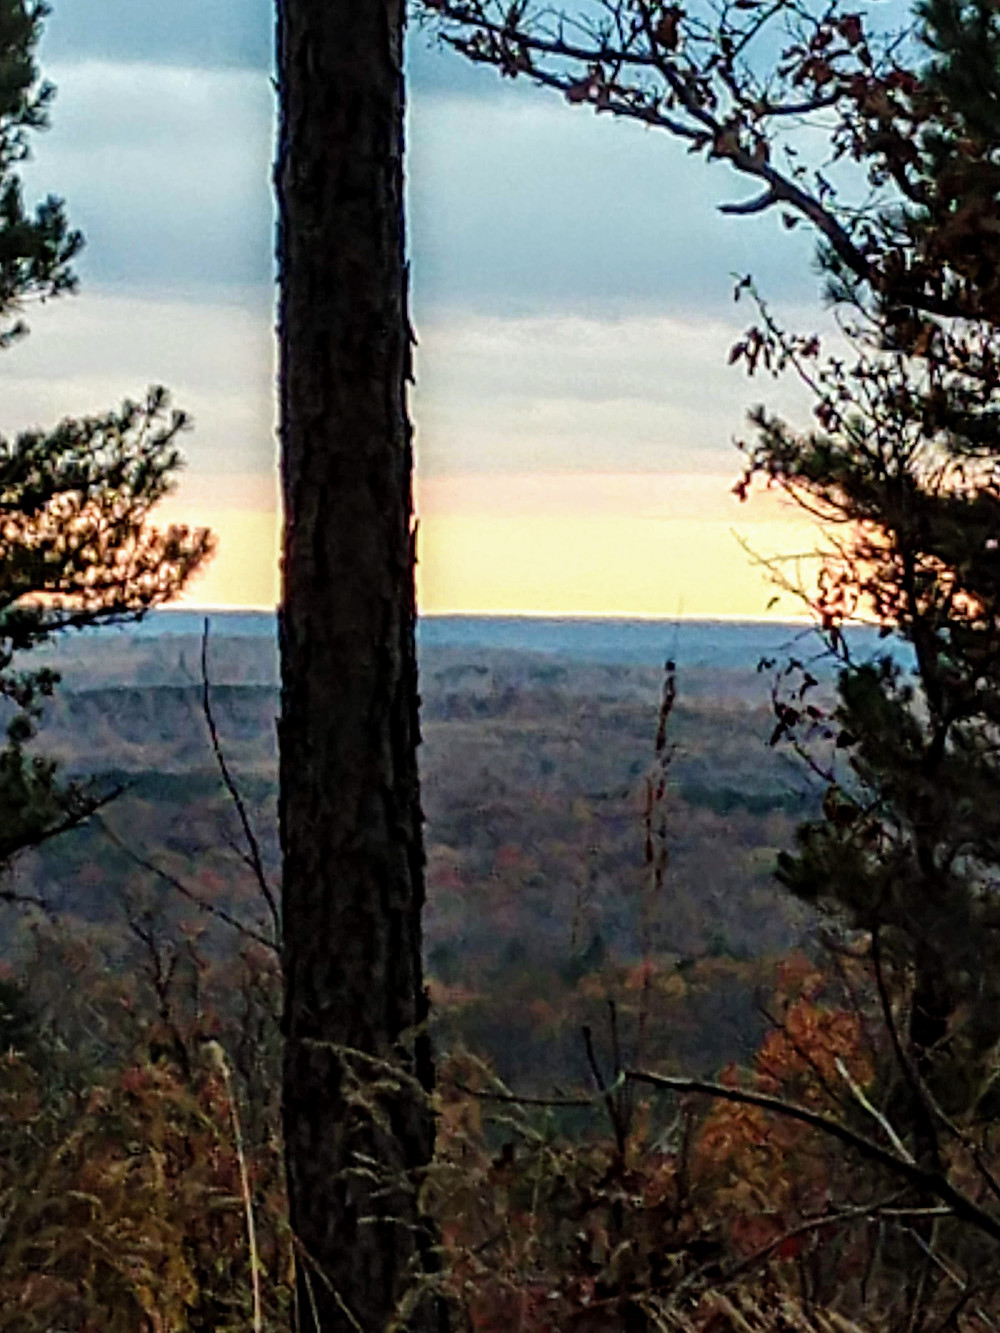 Evening from a Missouri Ozark mountain during deer season